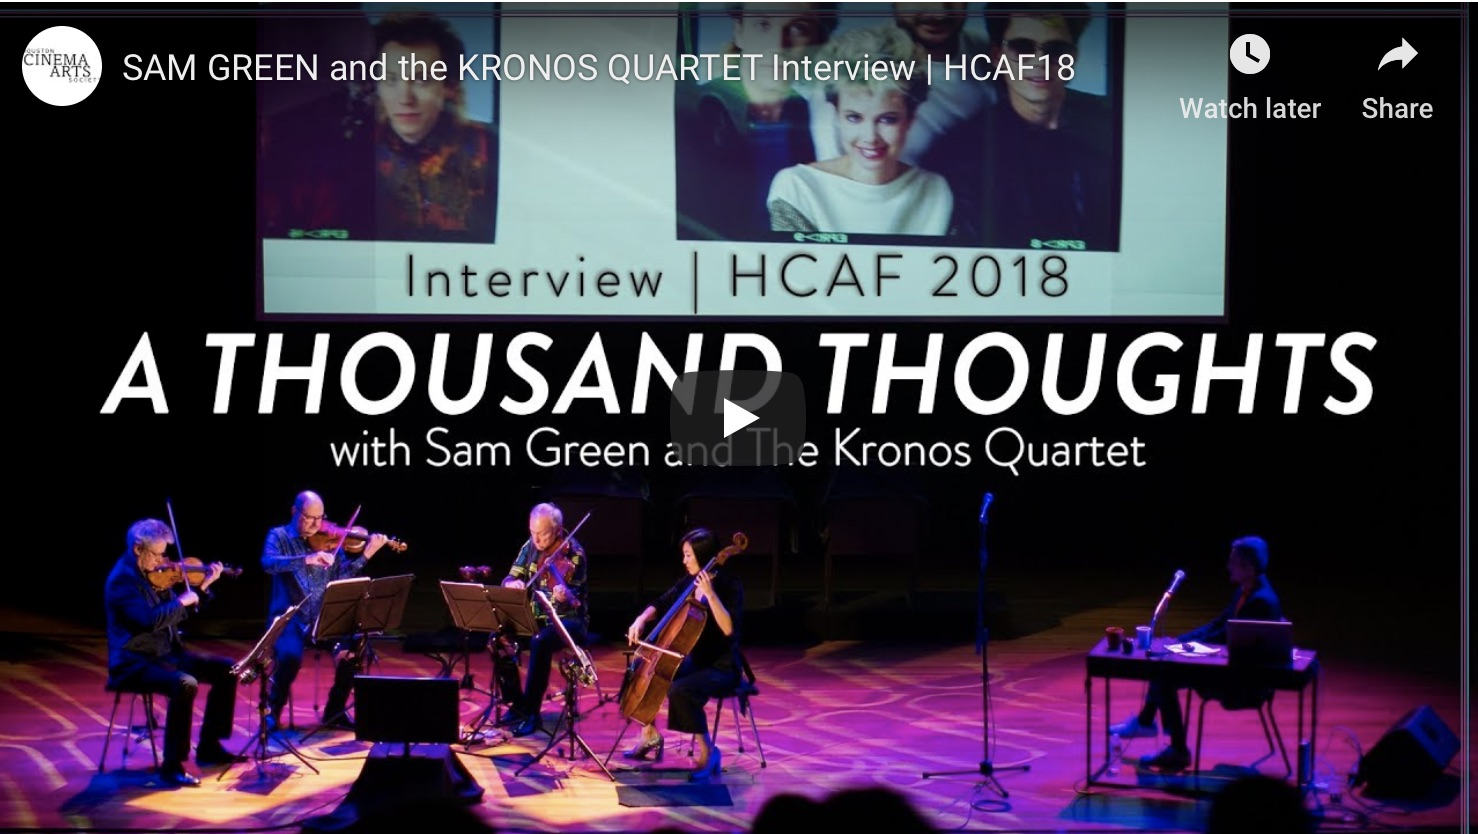 Interview with Sam Green and Kronos Quartet in Houston